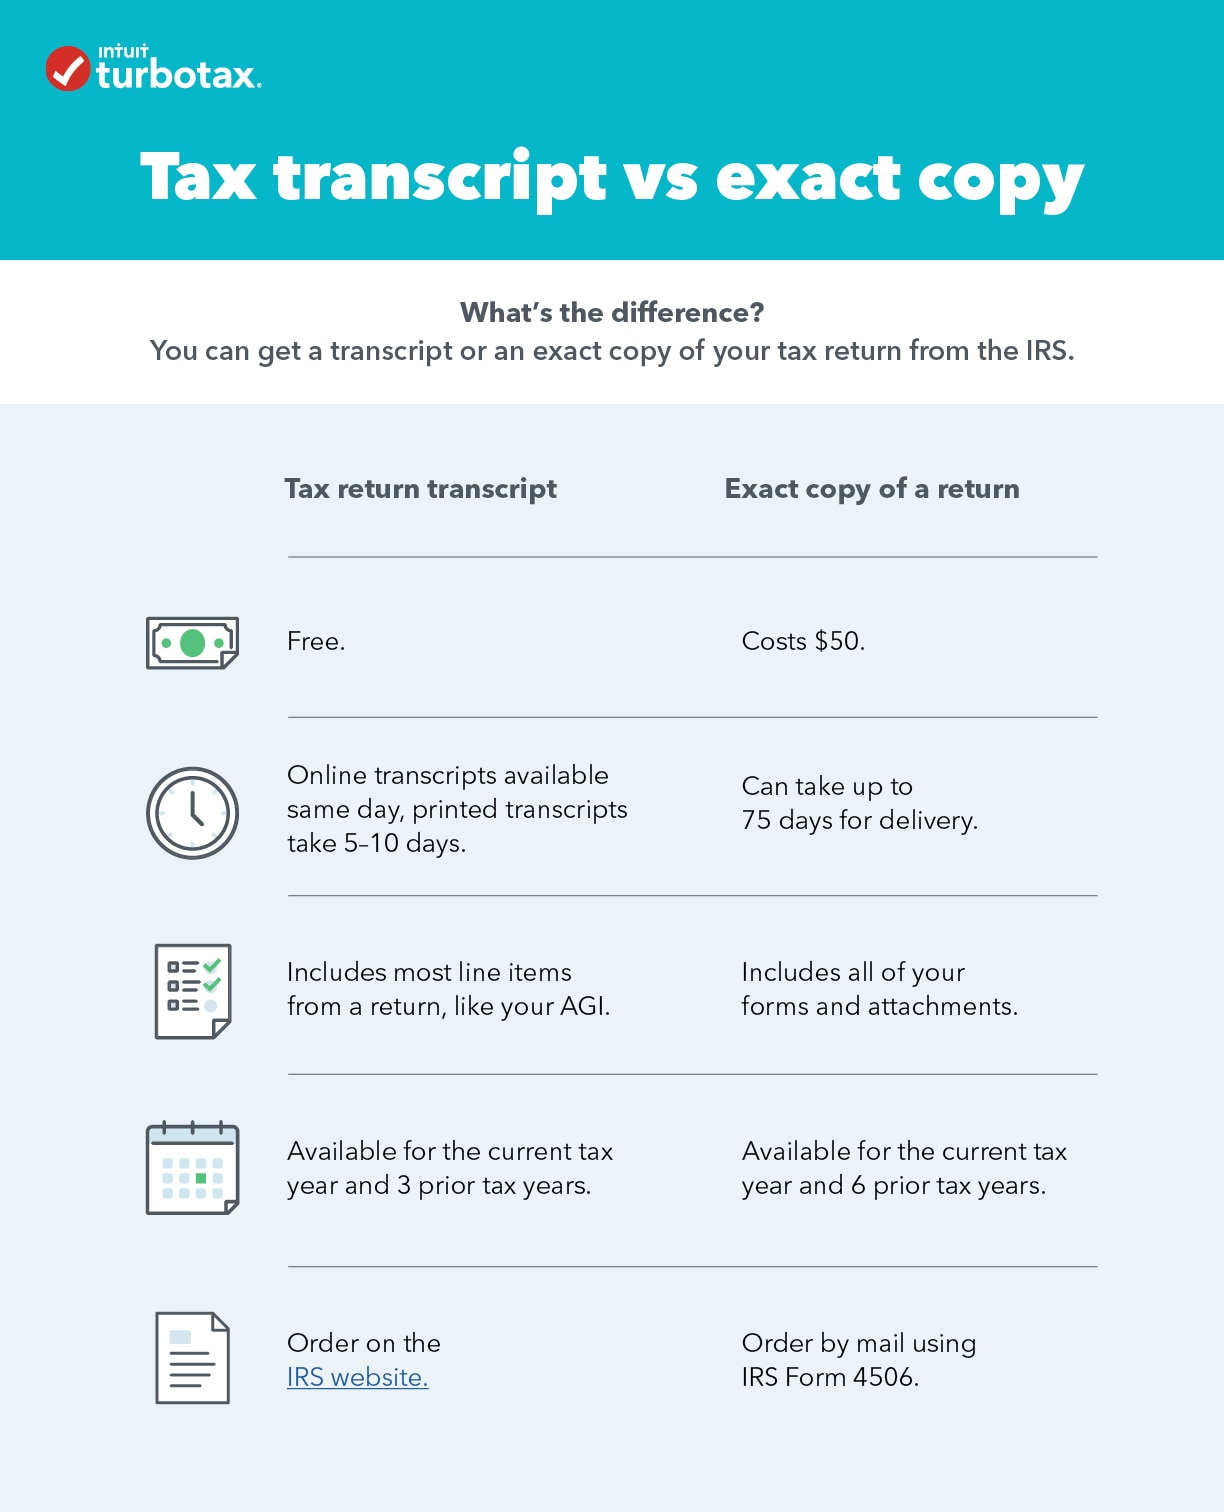 How do I get a copy of my tax return or transcript